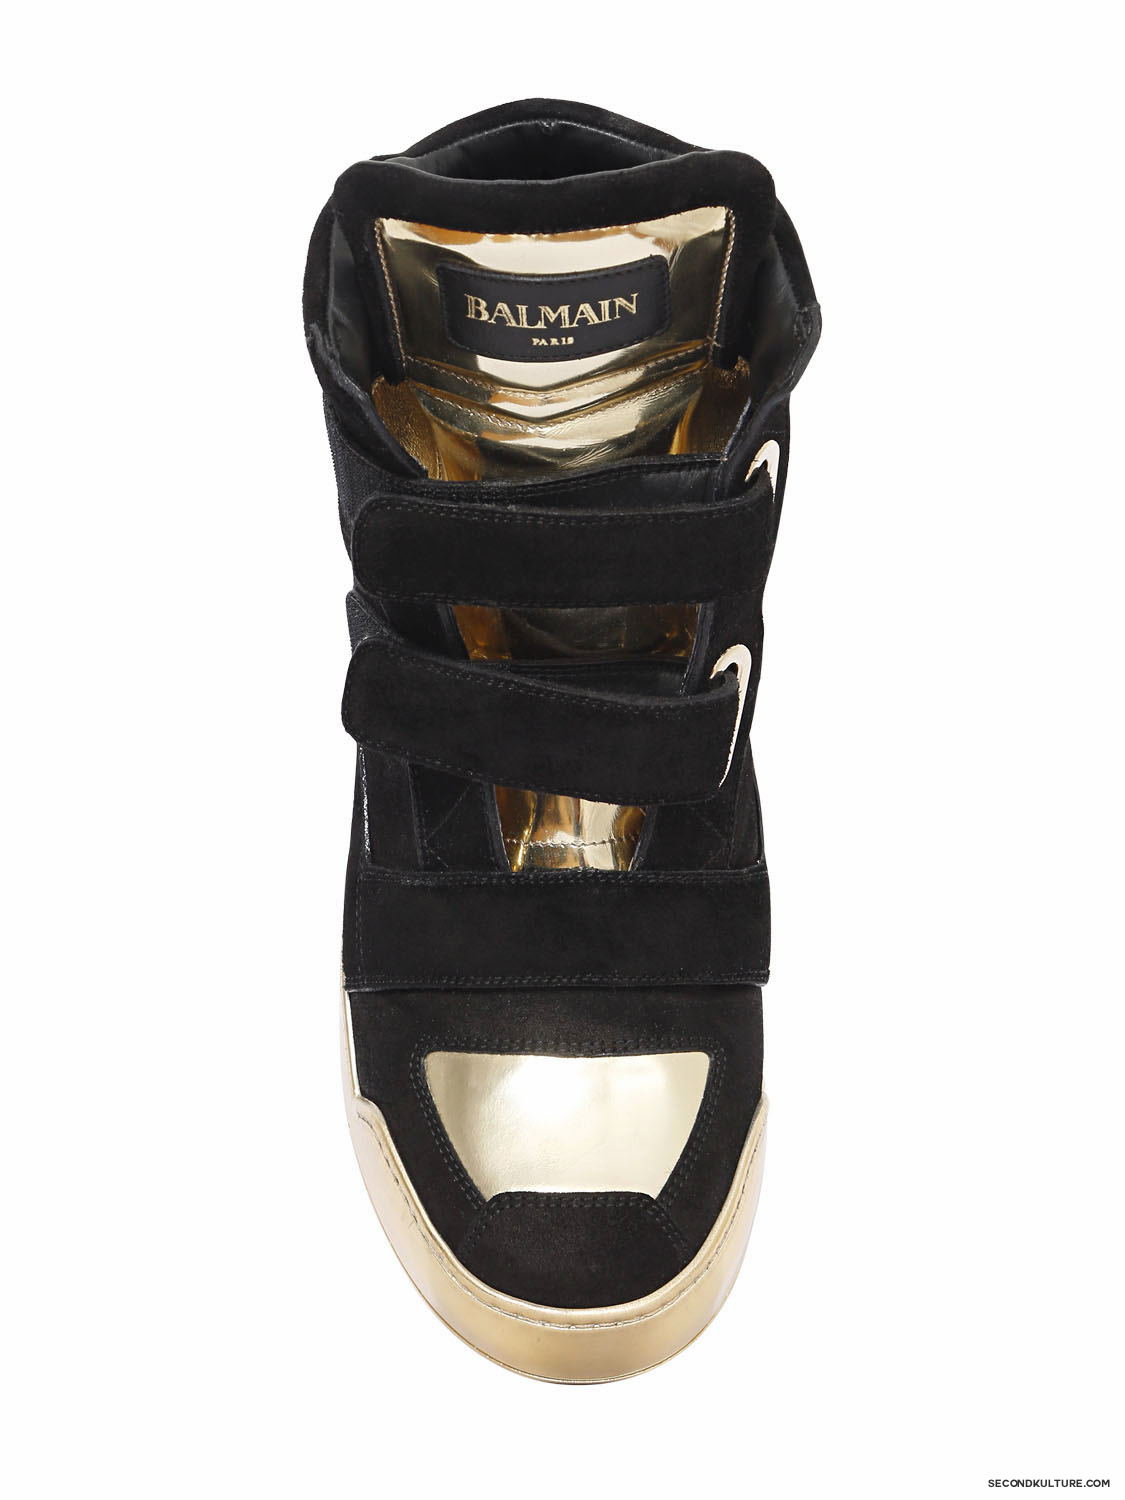 Balmain-Black-and-Gold-Crust-Suede-Velcro-High-Top-Sneakers-Fall-Winter-2015-2